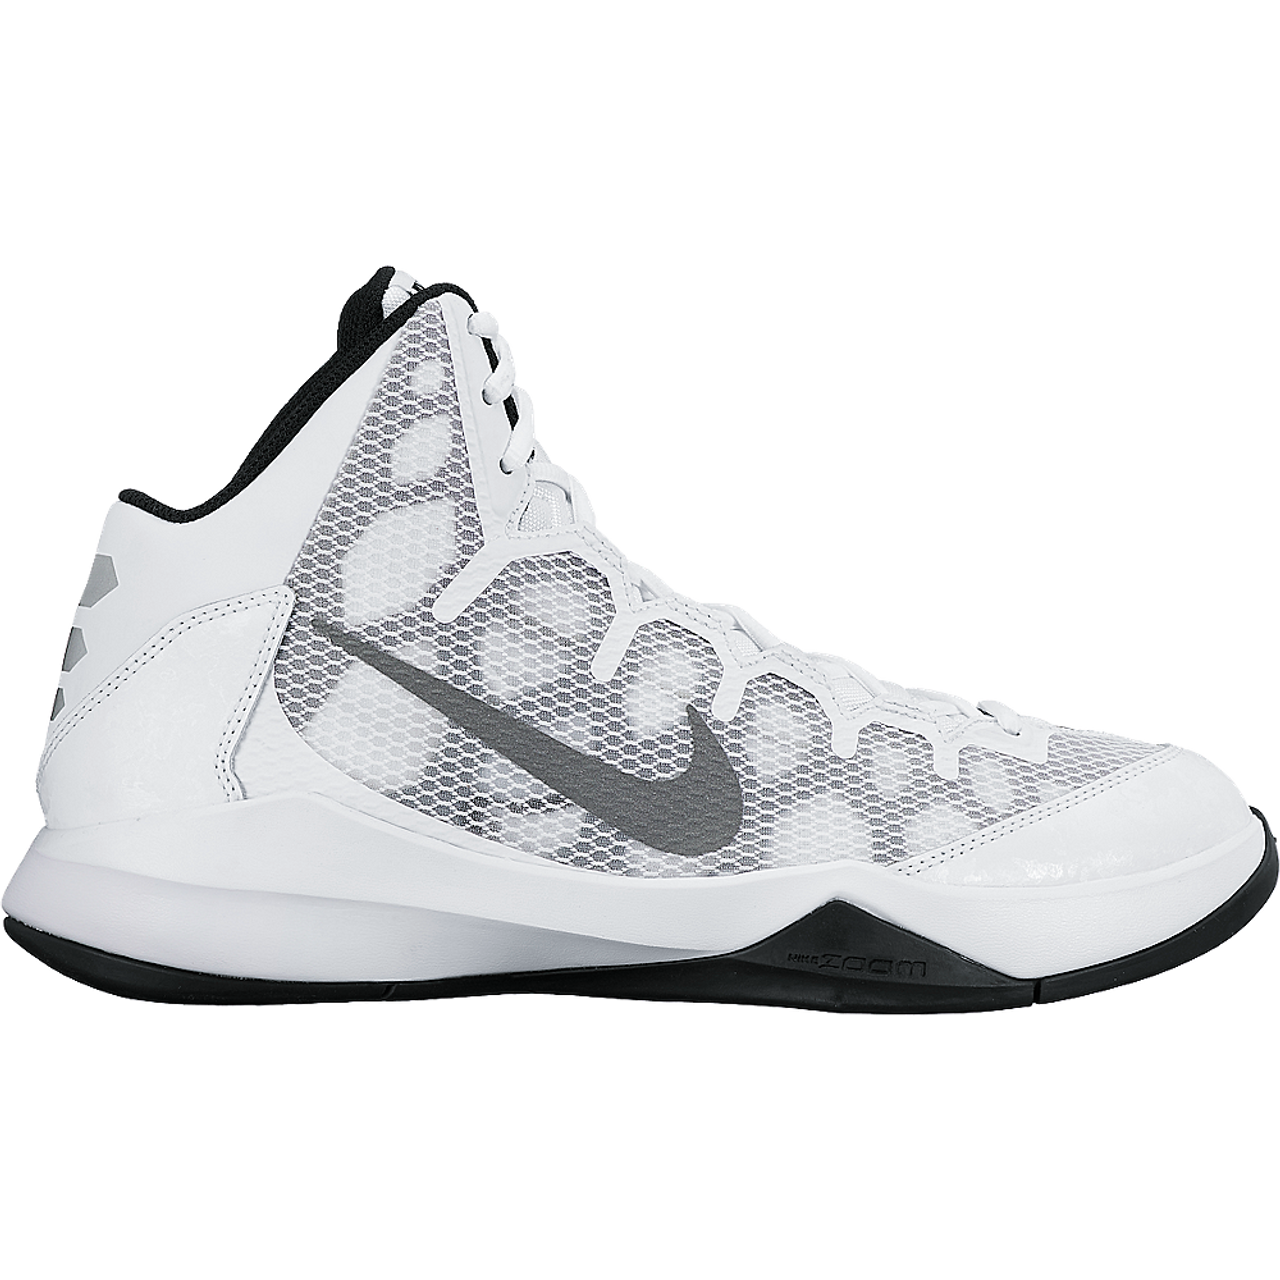 d9a2911a3c62 Nike Men s Zoom Without A Doubt - White Metallic Silver Black